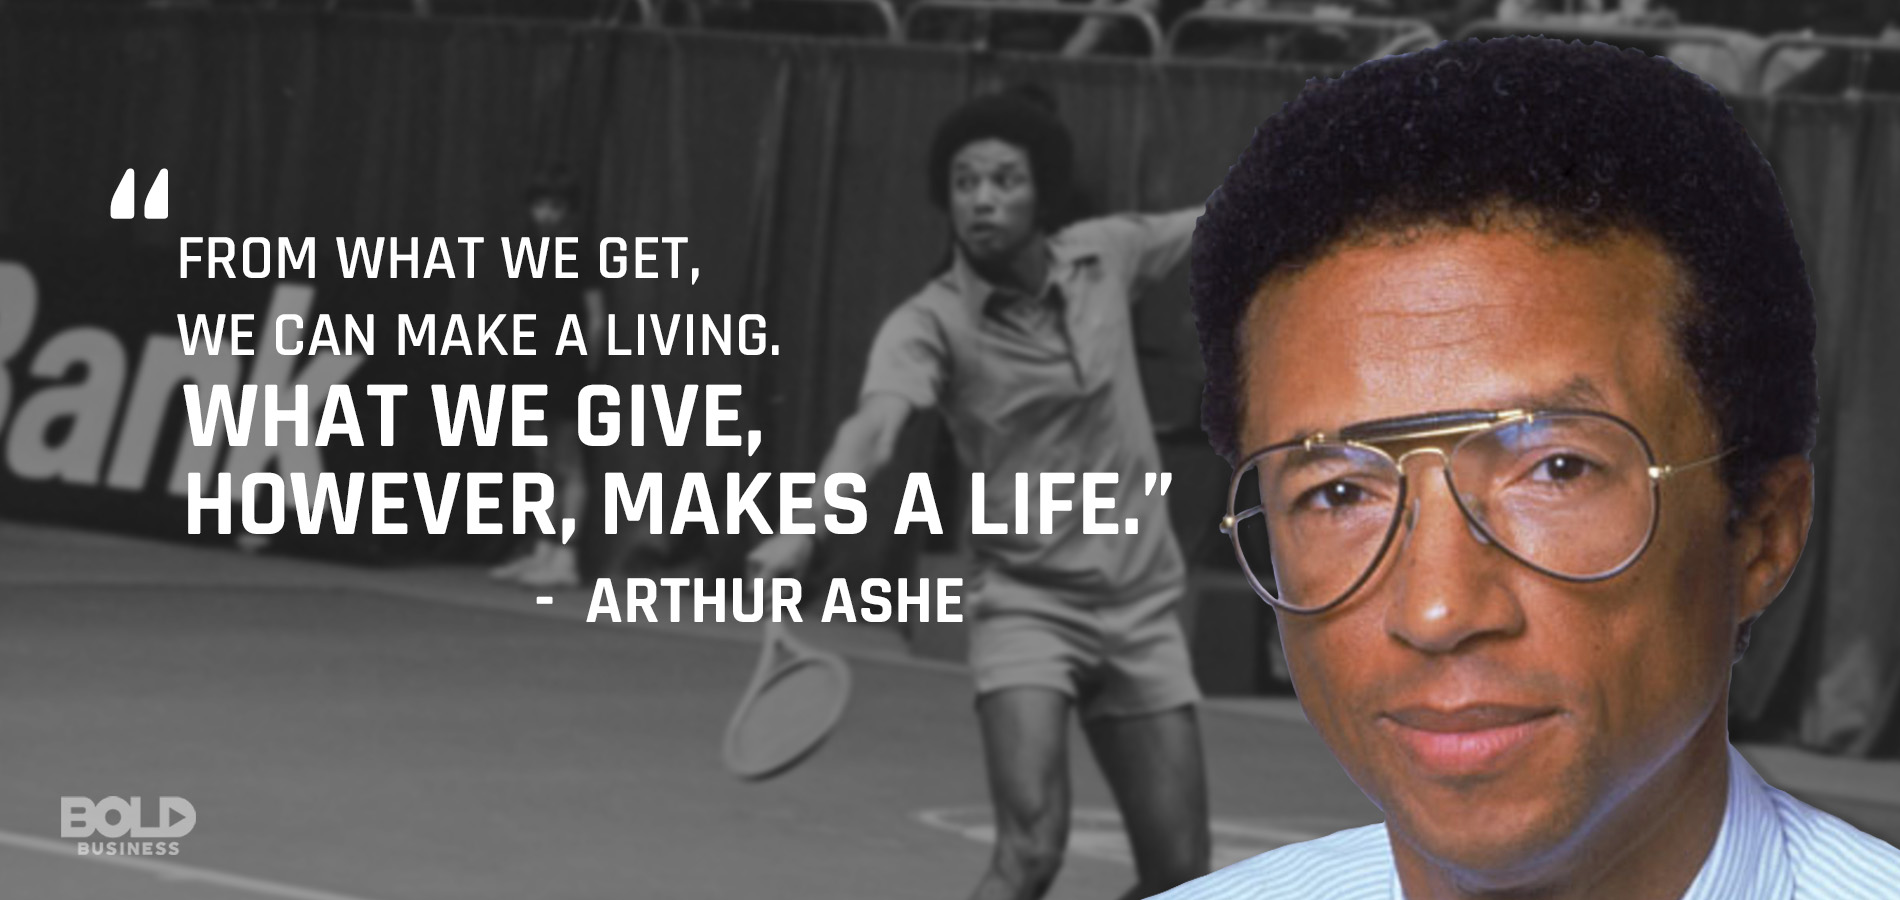 Arthur Ashe quote about life and legacy